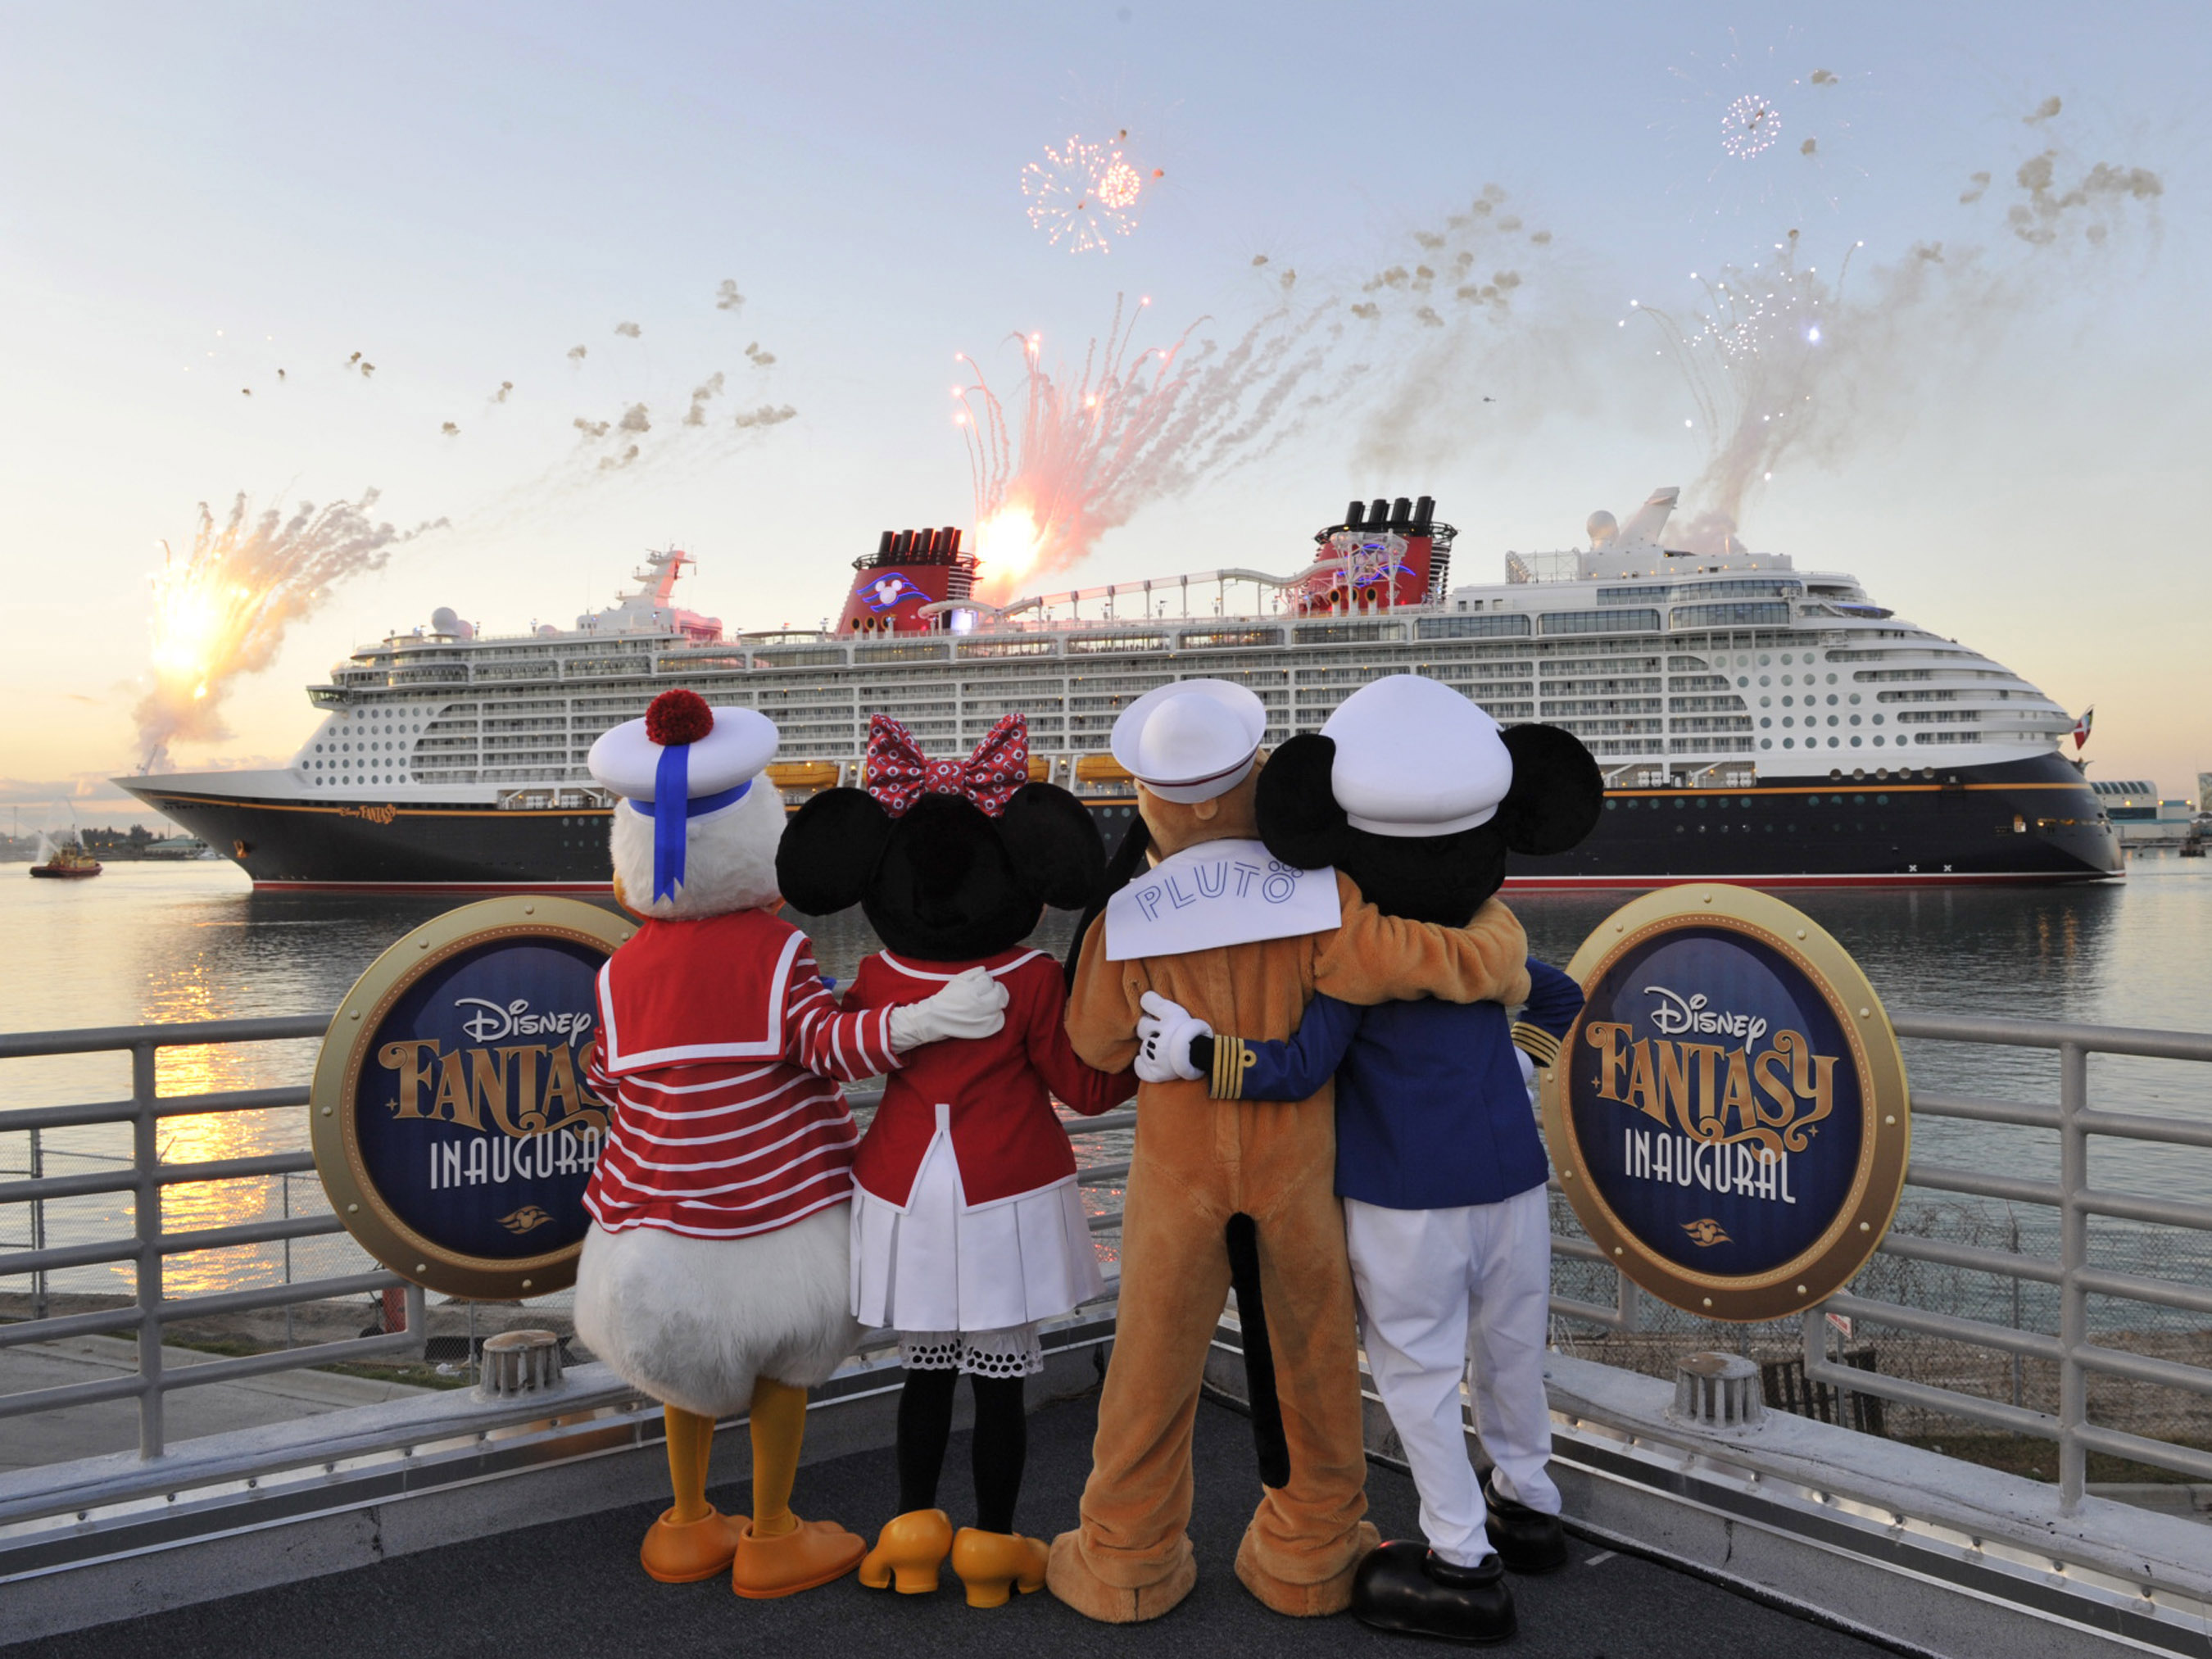 Discover what sets Disney Cruise Line apart Explore awardwinning family cruises featuring worldclass entertainment modern amenities and legendary service to